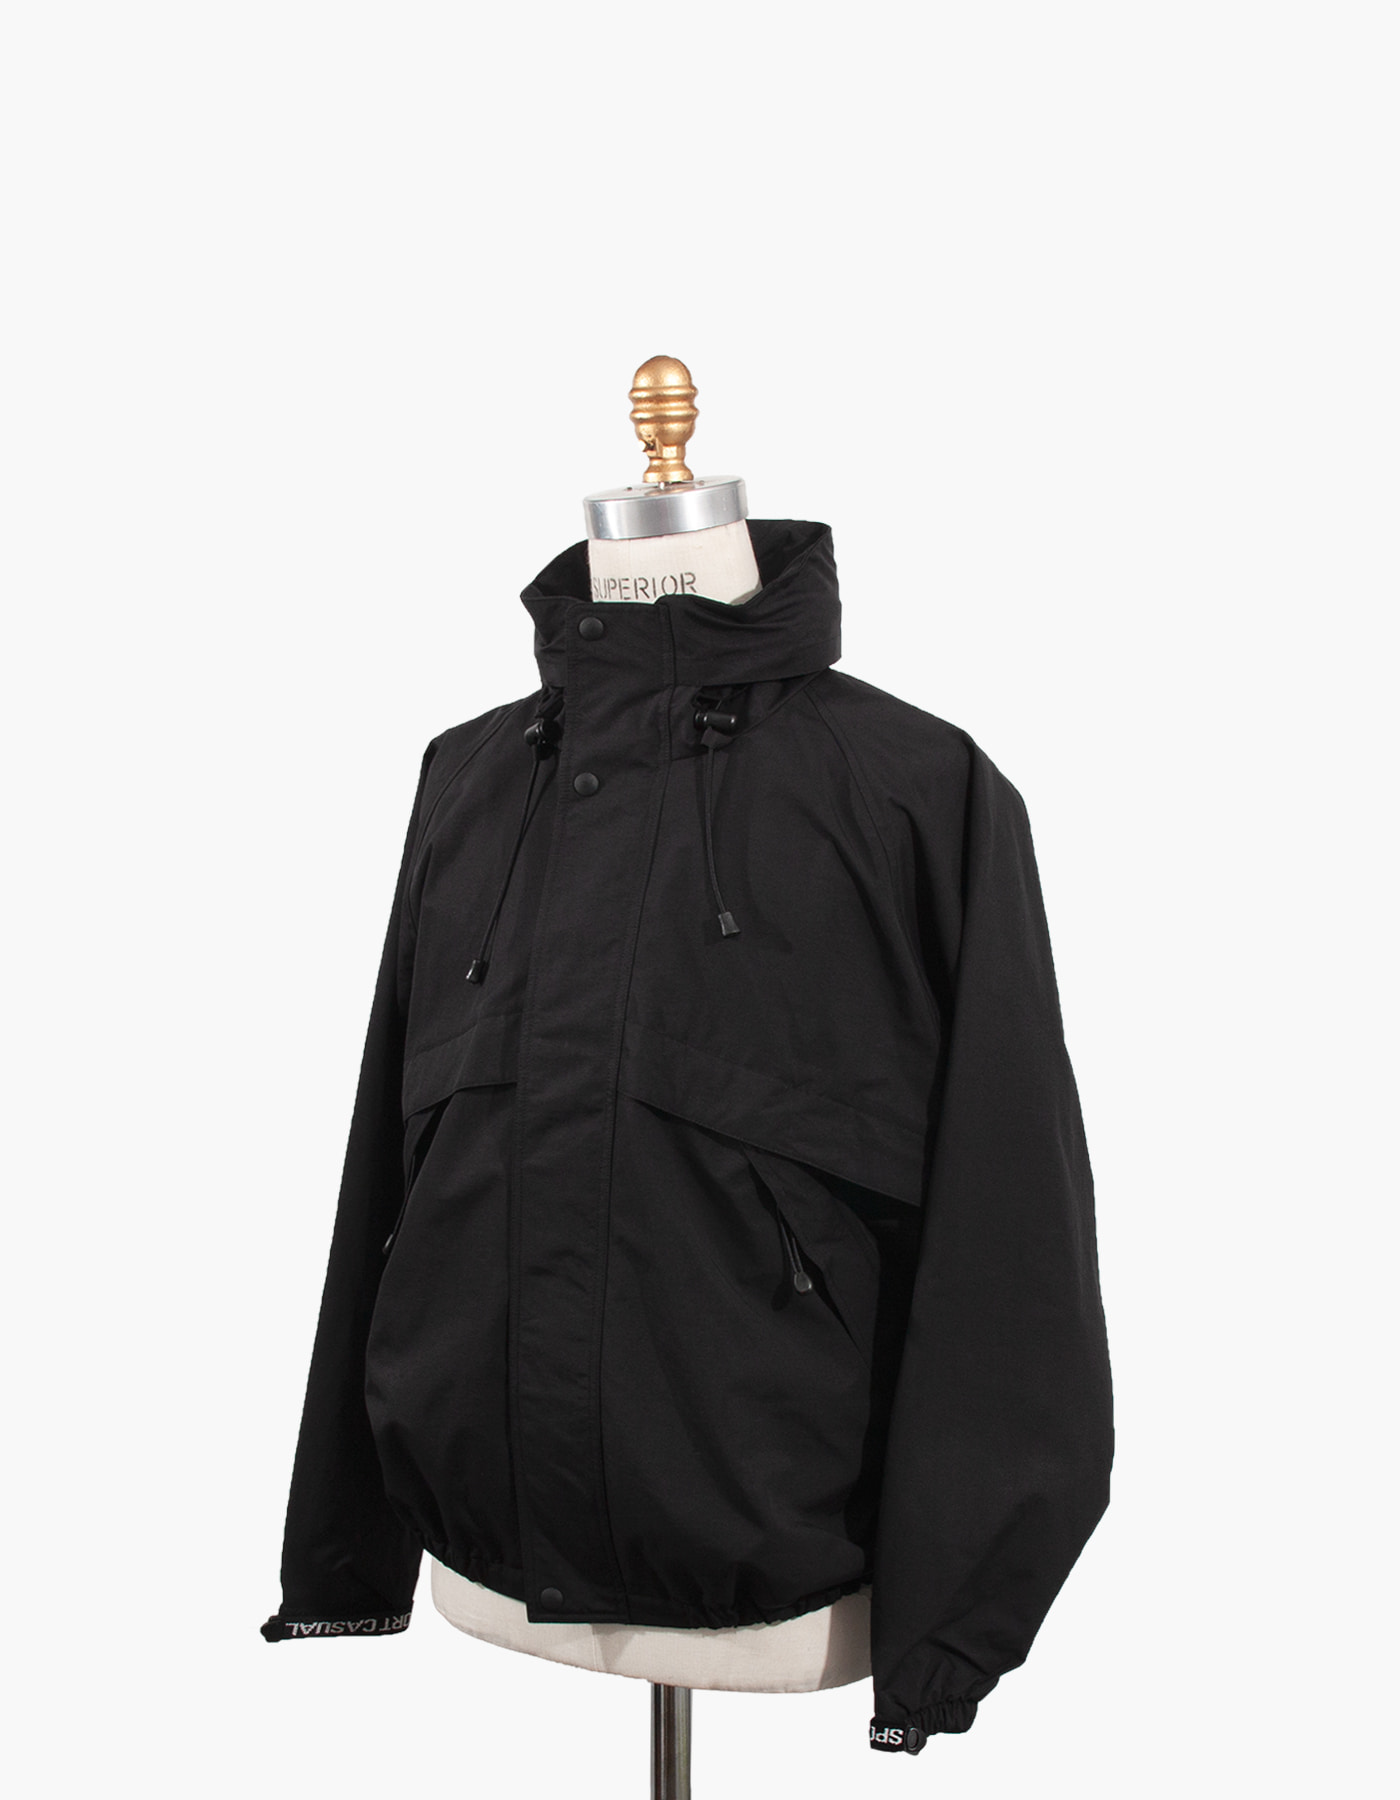 SAILING JACKET / BLACK